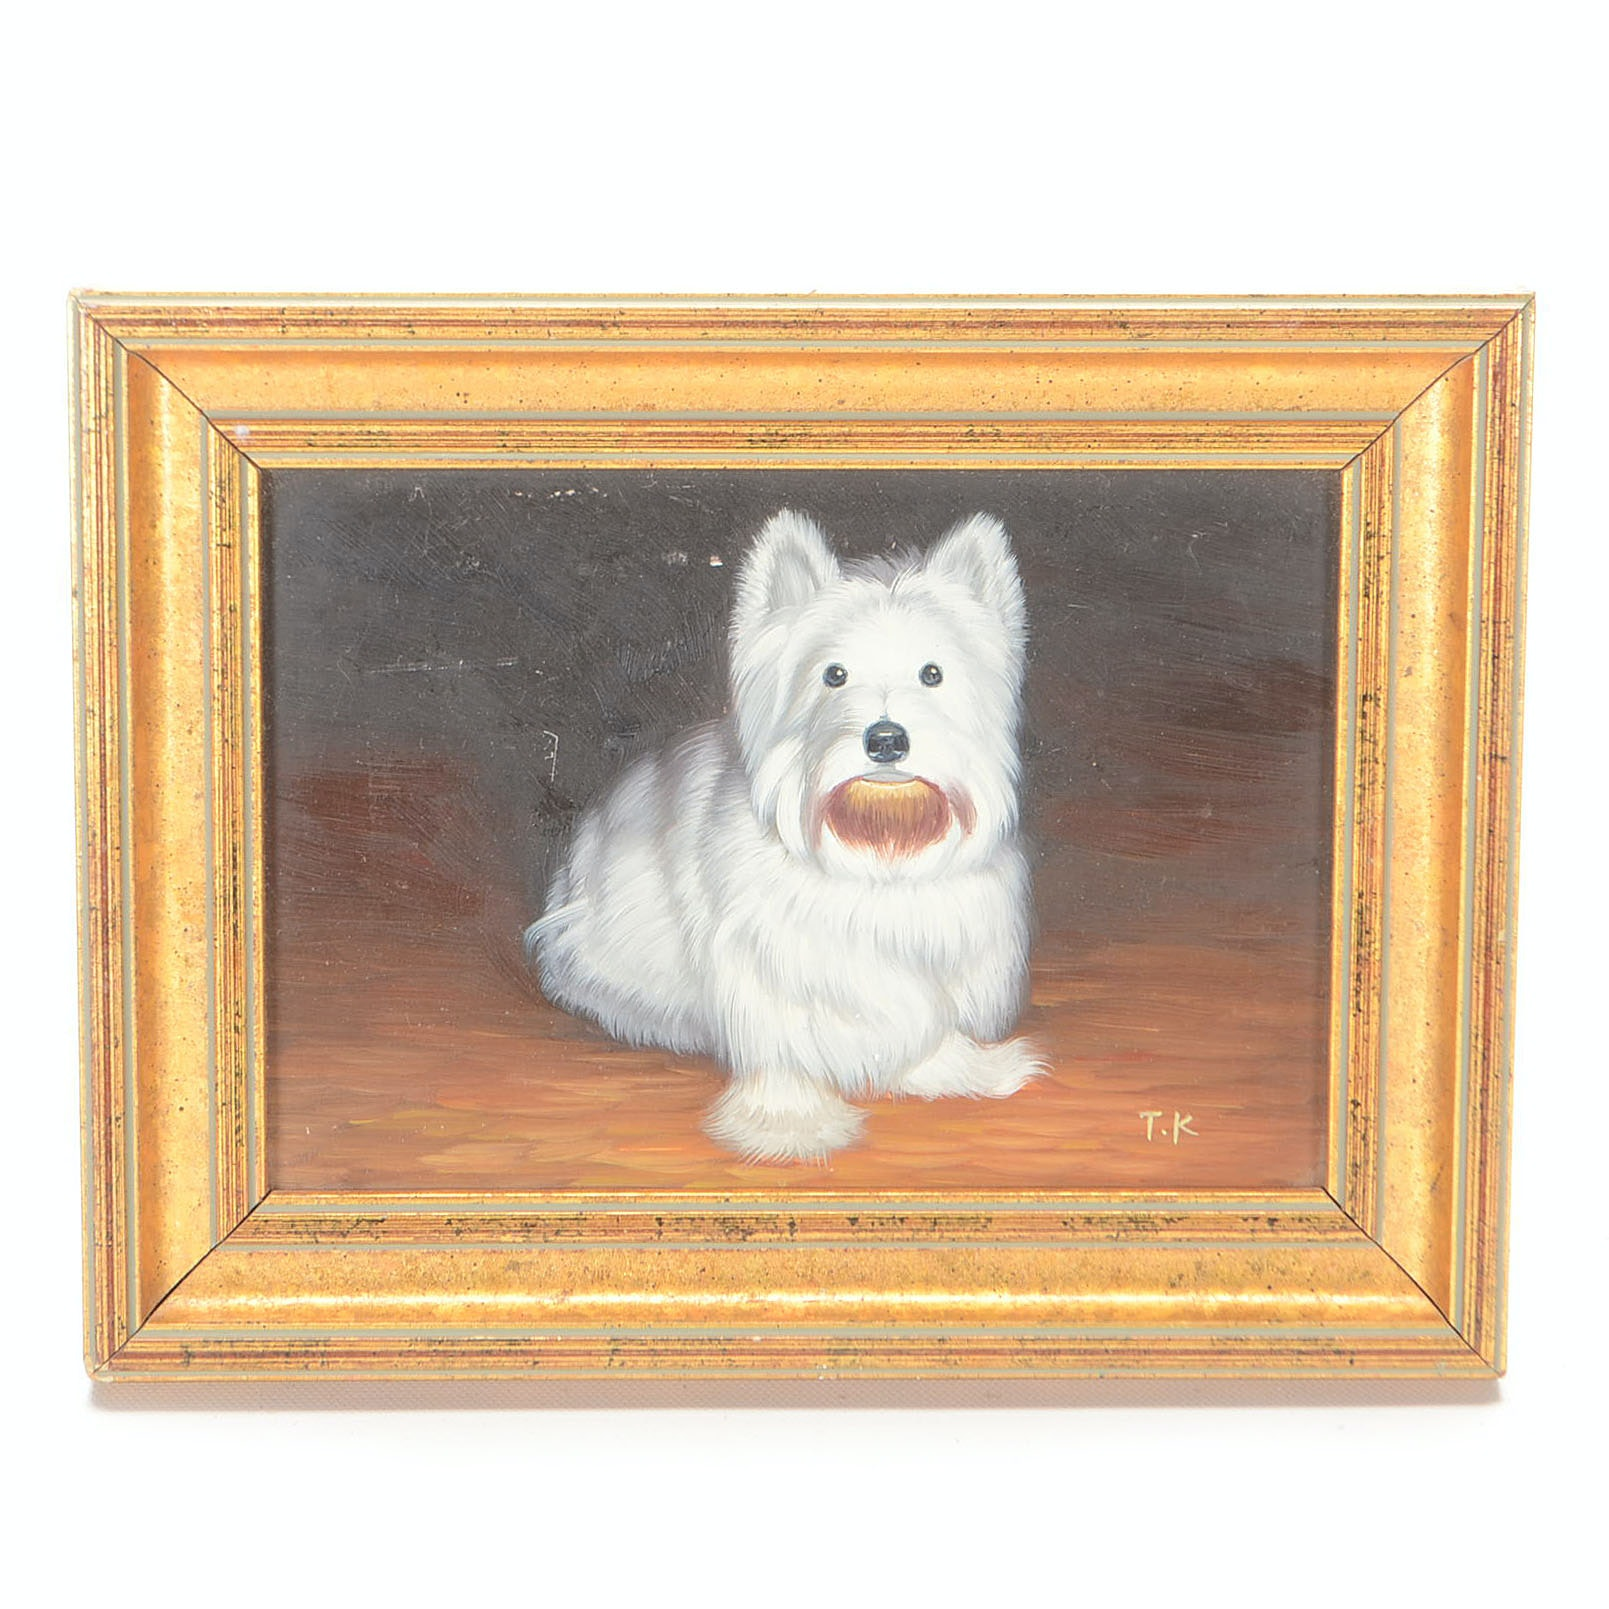 TK Original Oil Painting on Board of a Westie Terrier